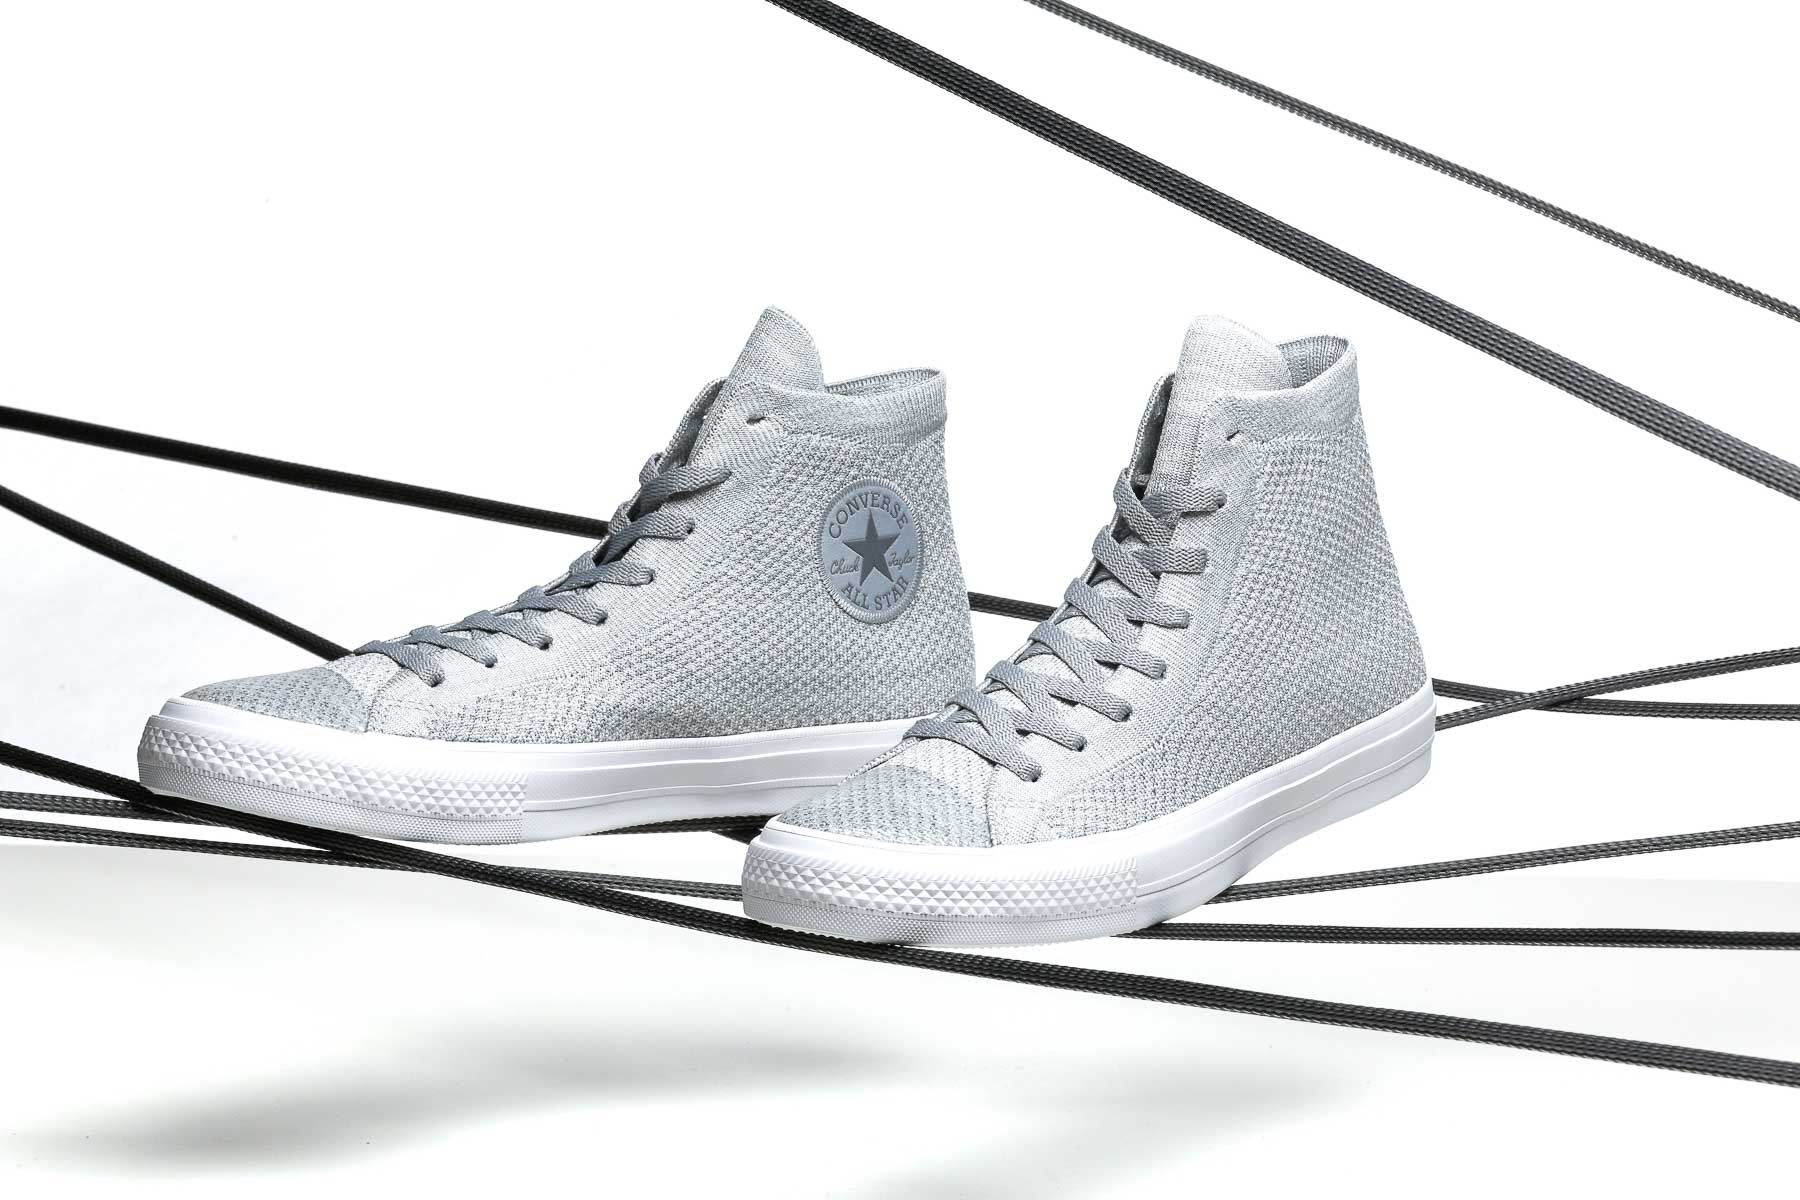 converse-chuck taylor all star x nike flyknit-5